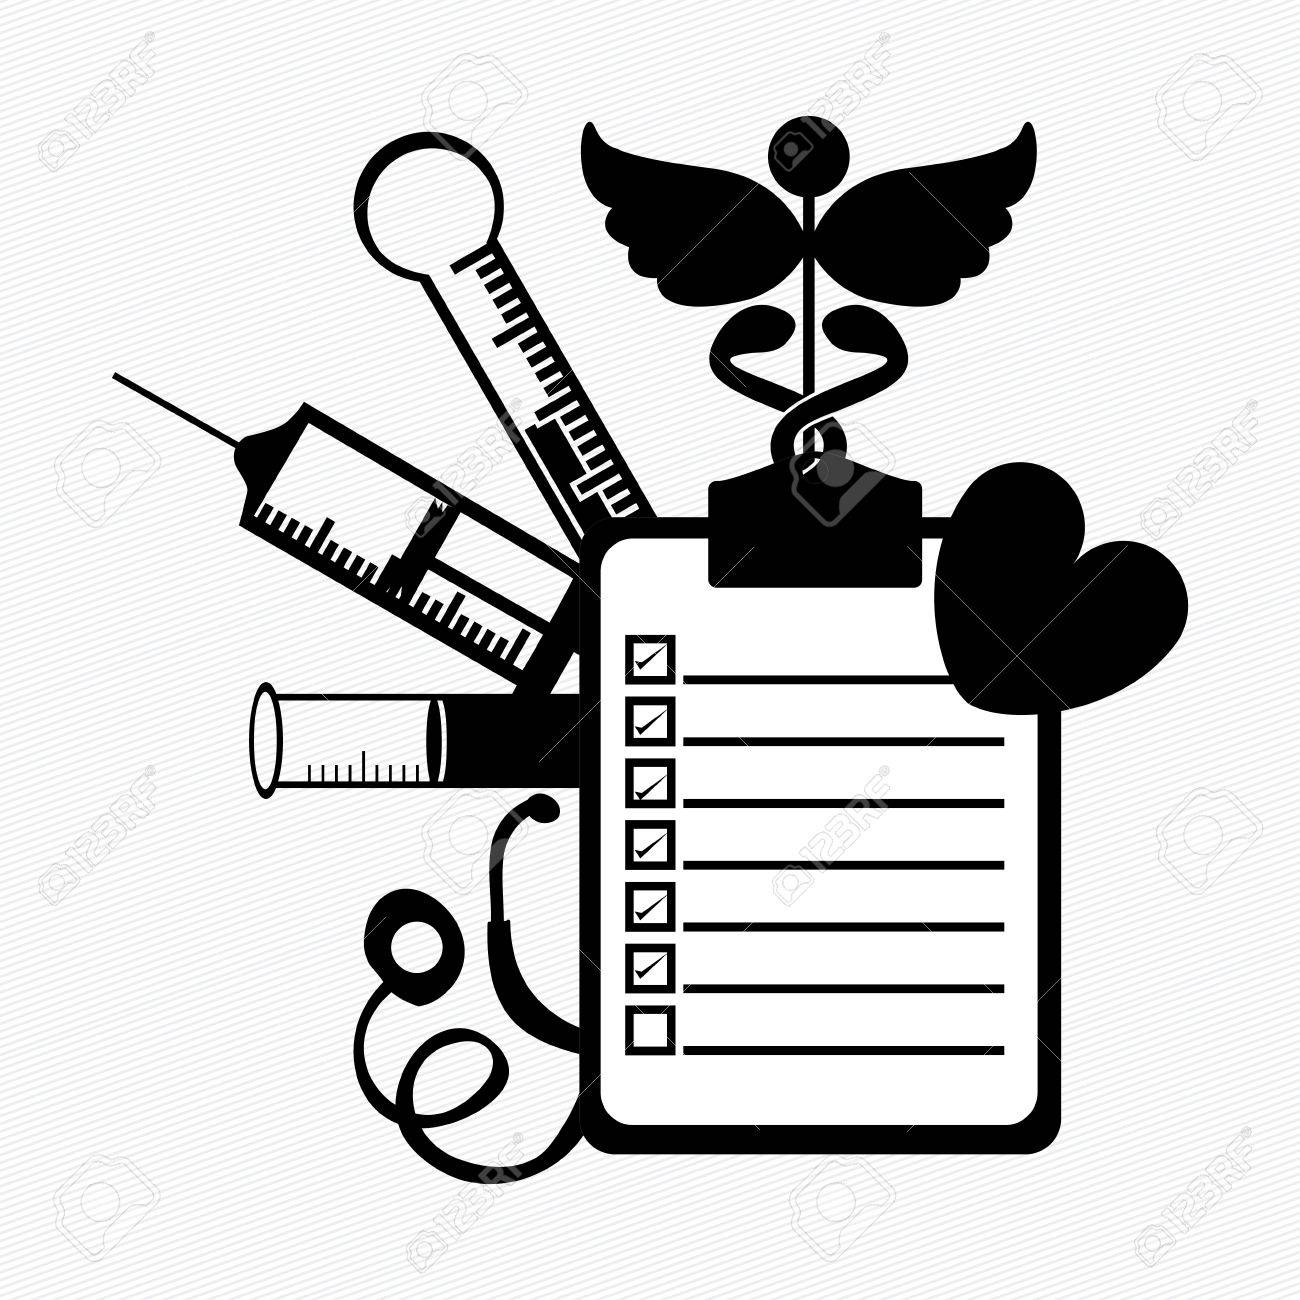 medical design over white background vector illustration Stock Vector - 21522767